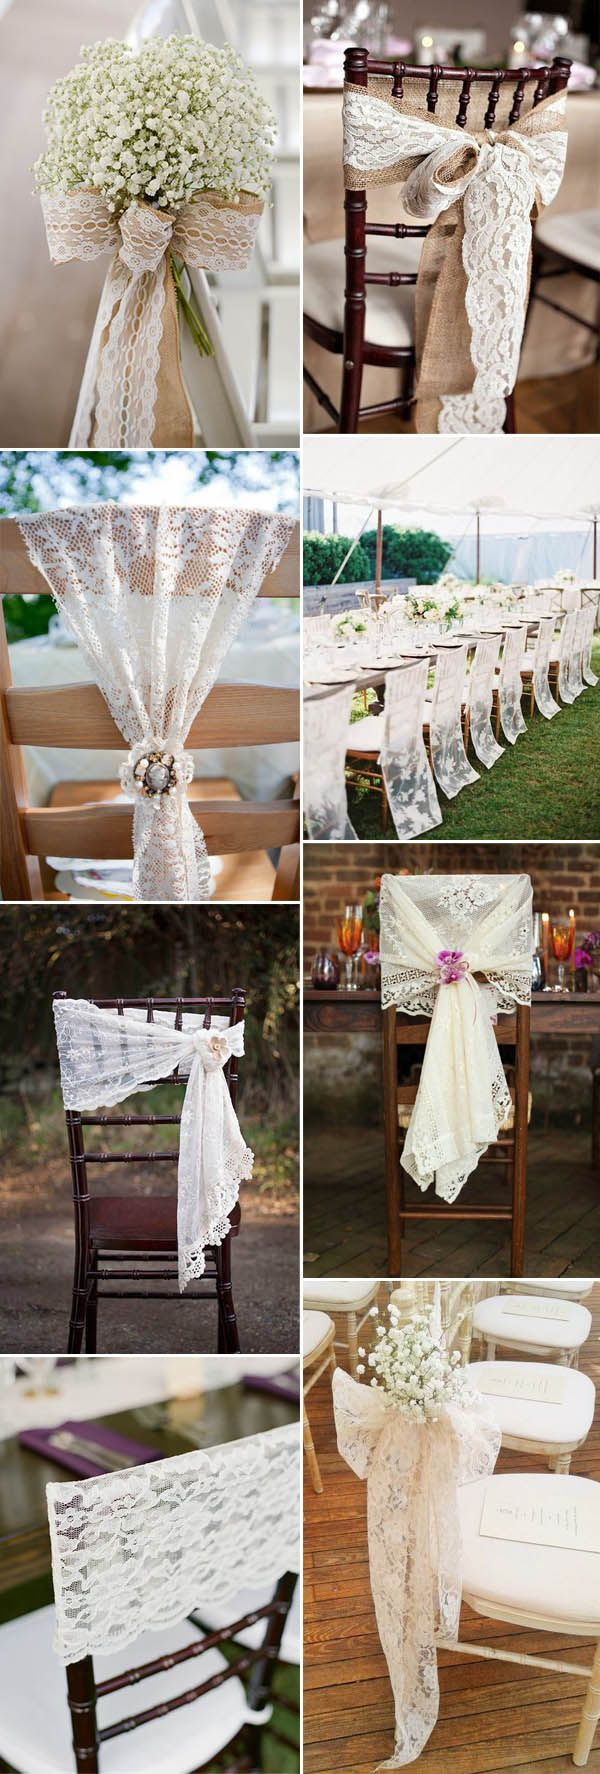 Pin By Amuscarello On Wedding Decor Wedding Chair Decorations